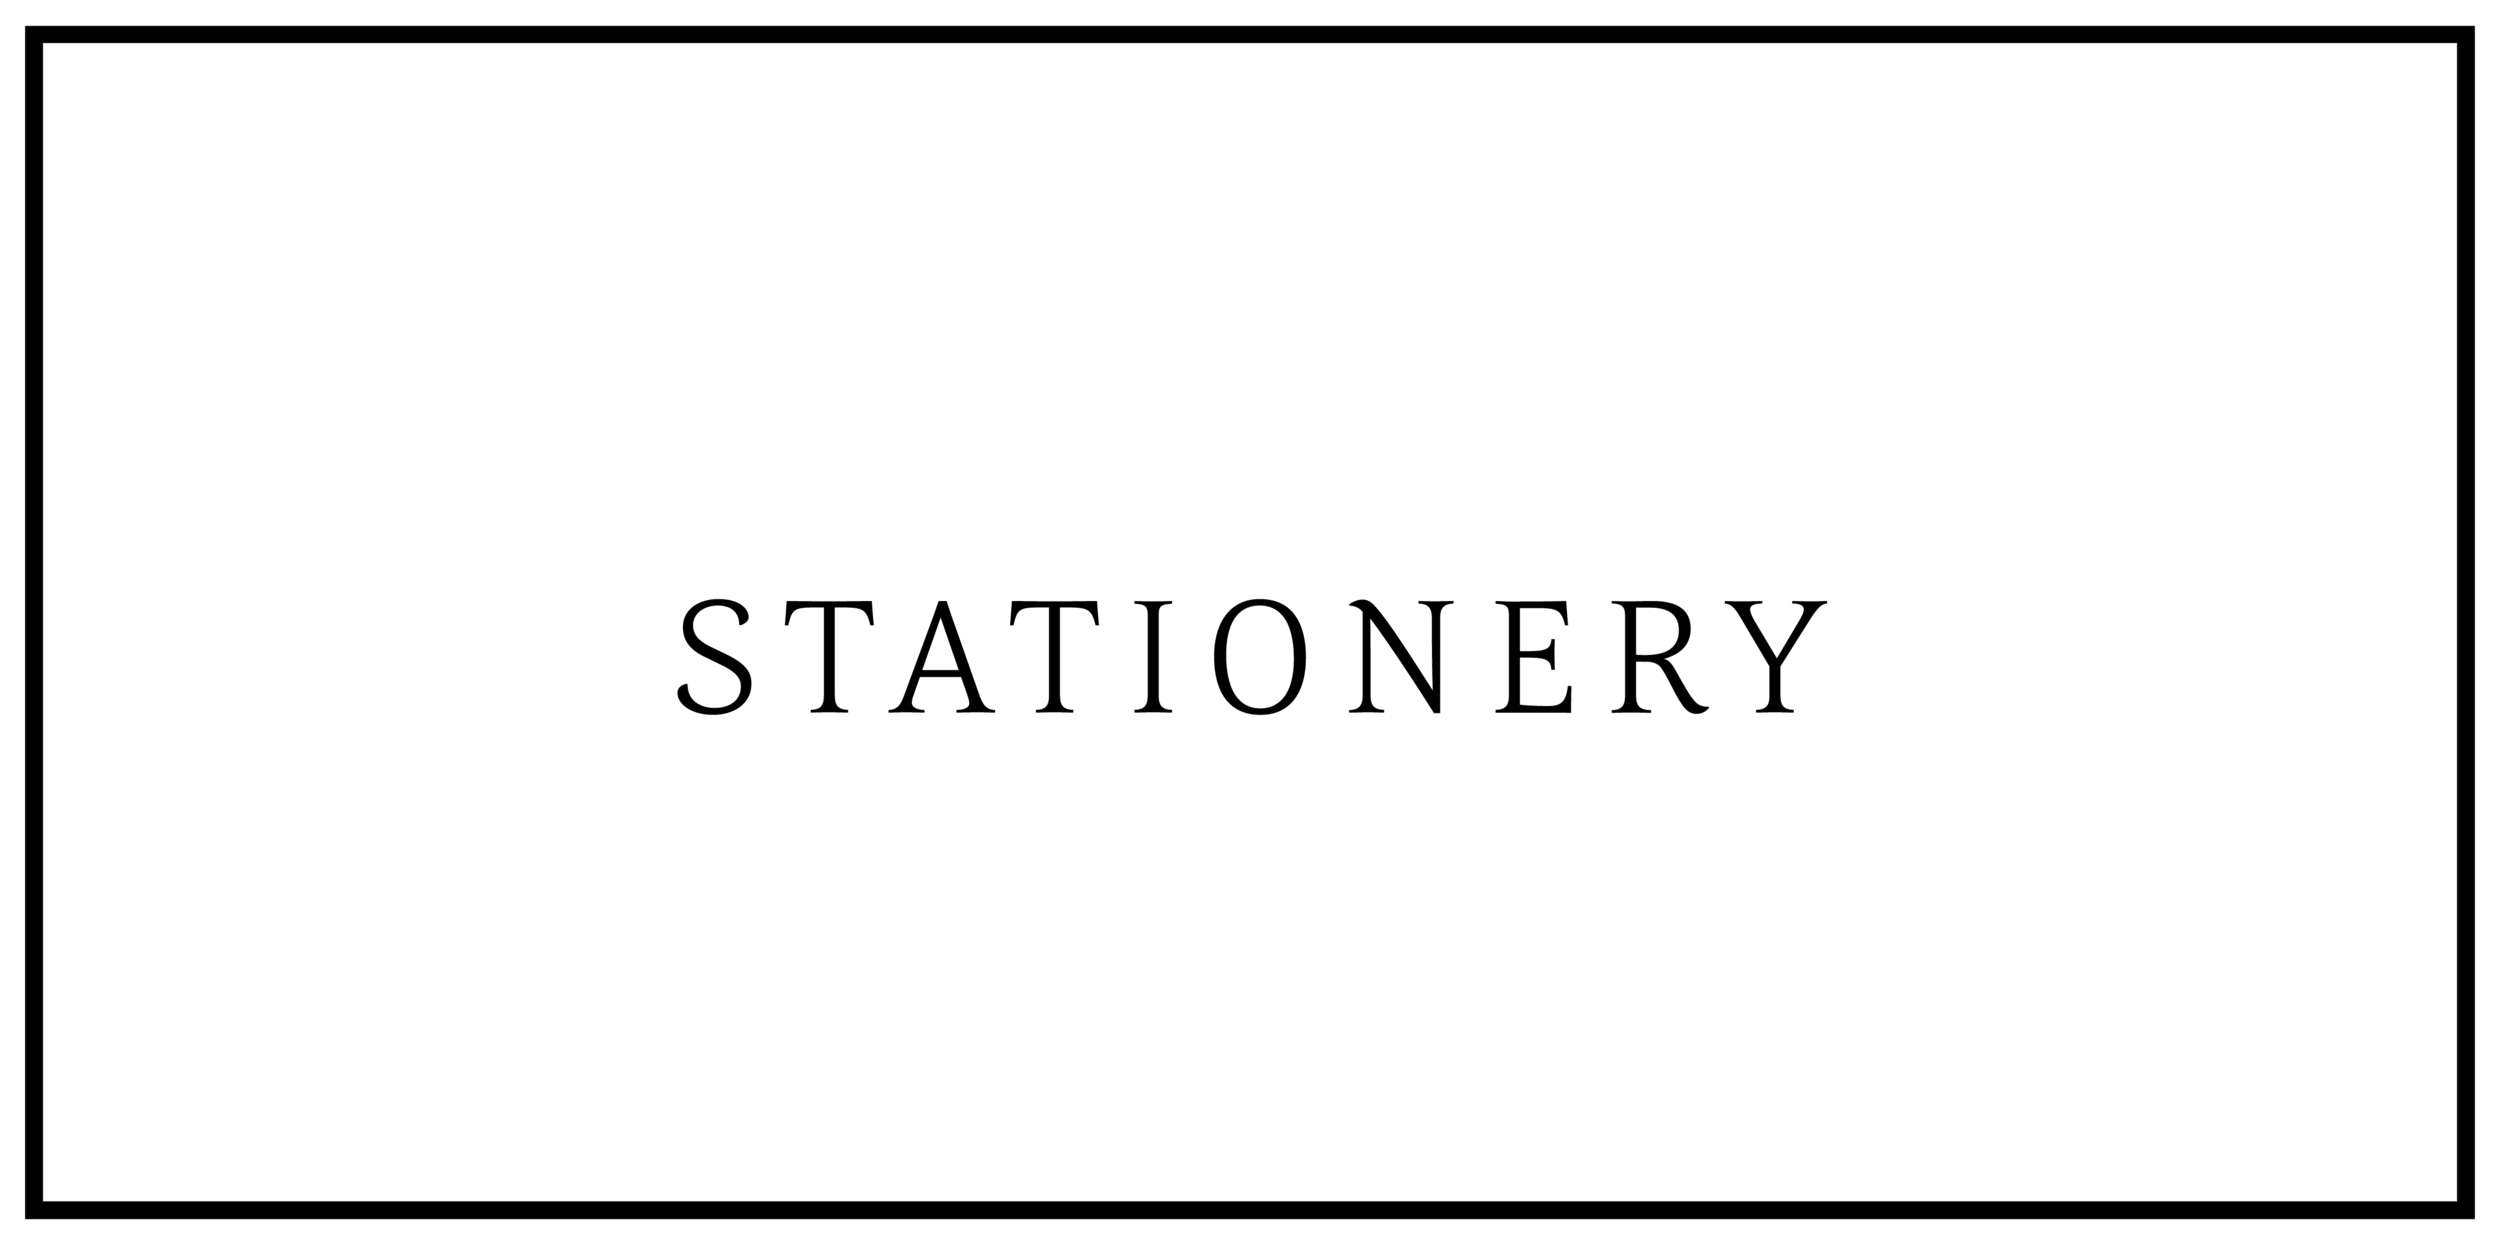 Squarespace_Navigator_Stationery.png